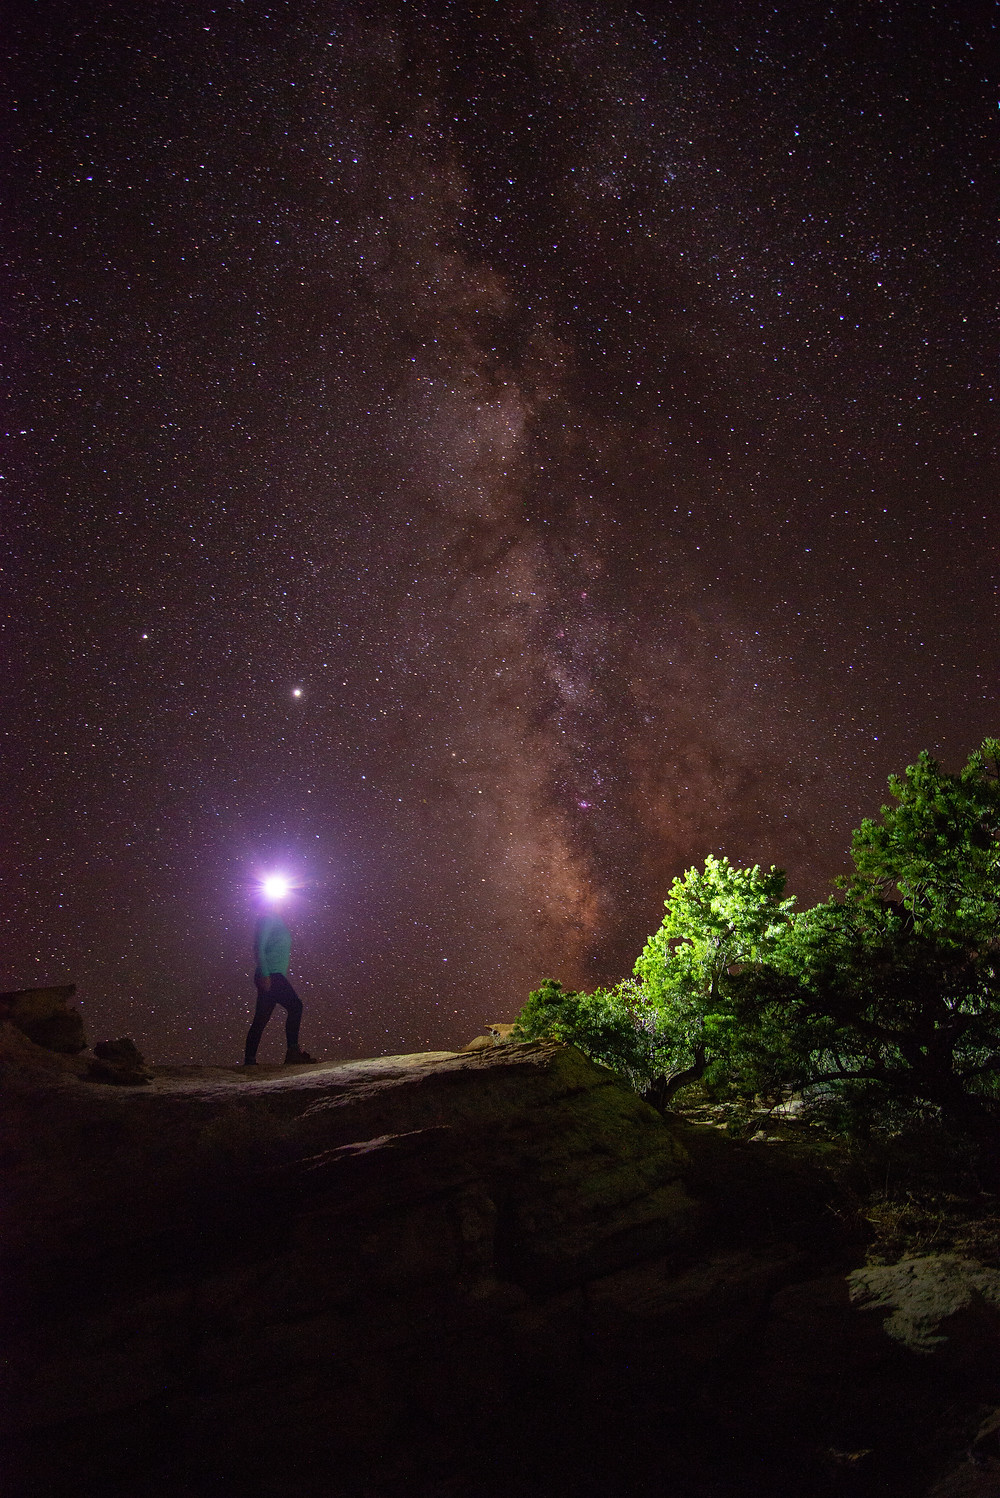 A hiker stands under the Milky Way in Capitol Reef National Park in Utah.